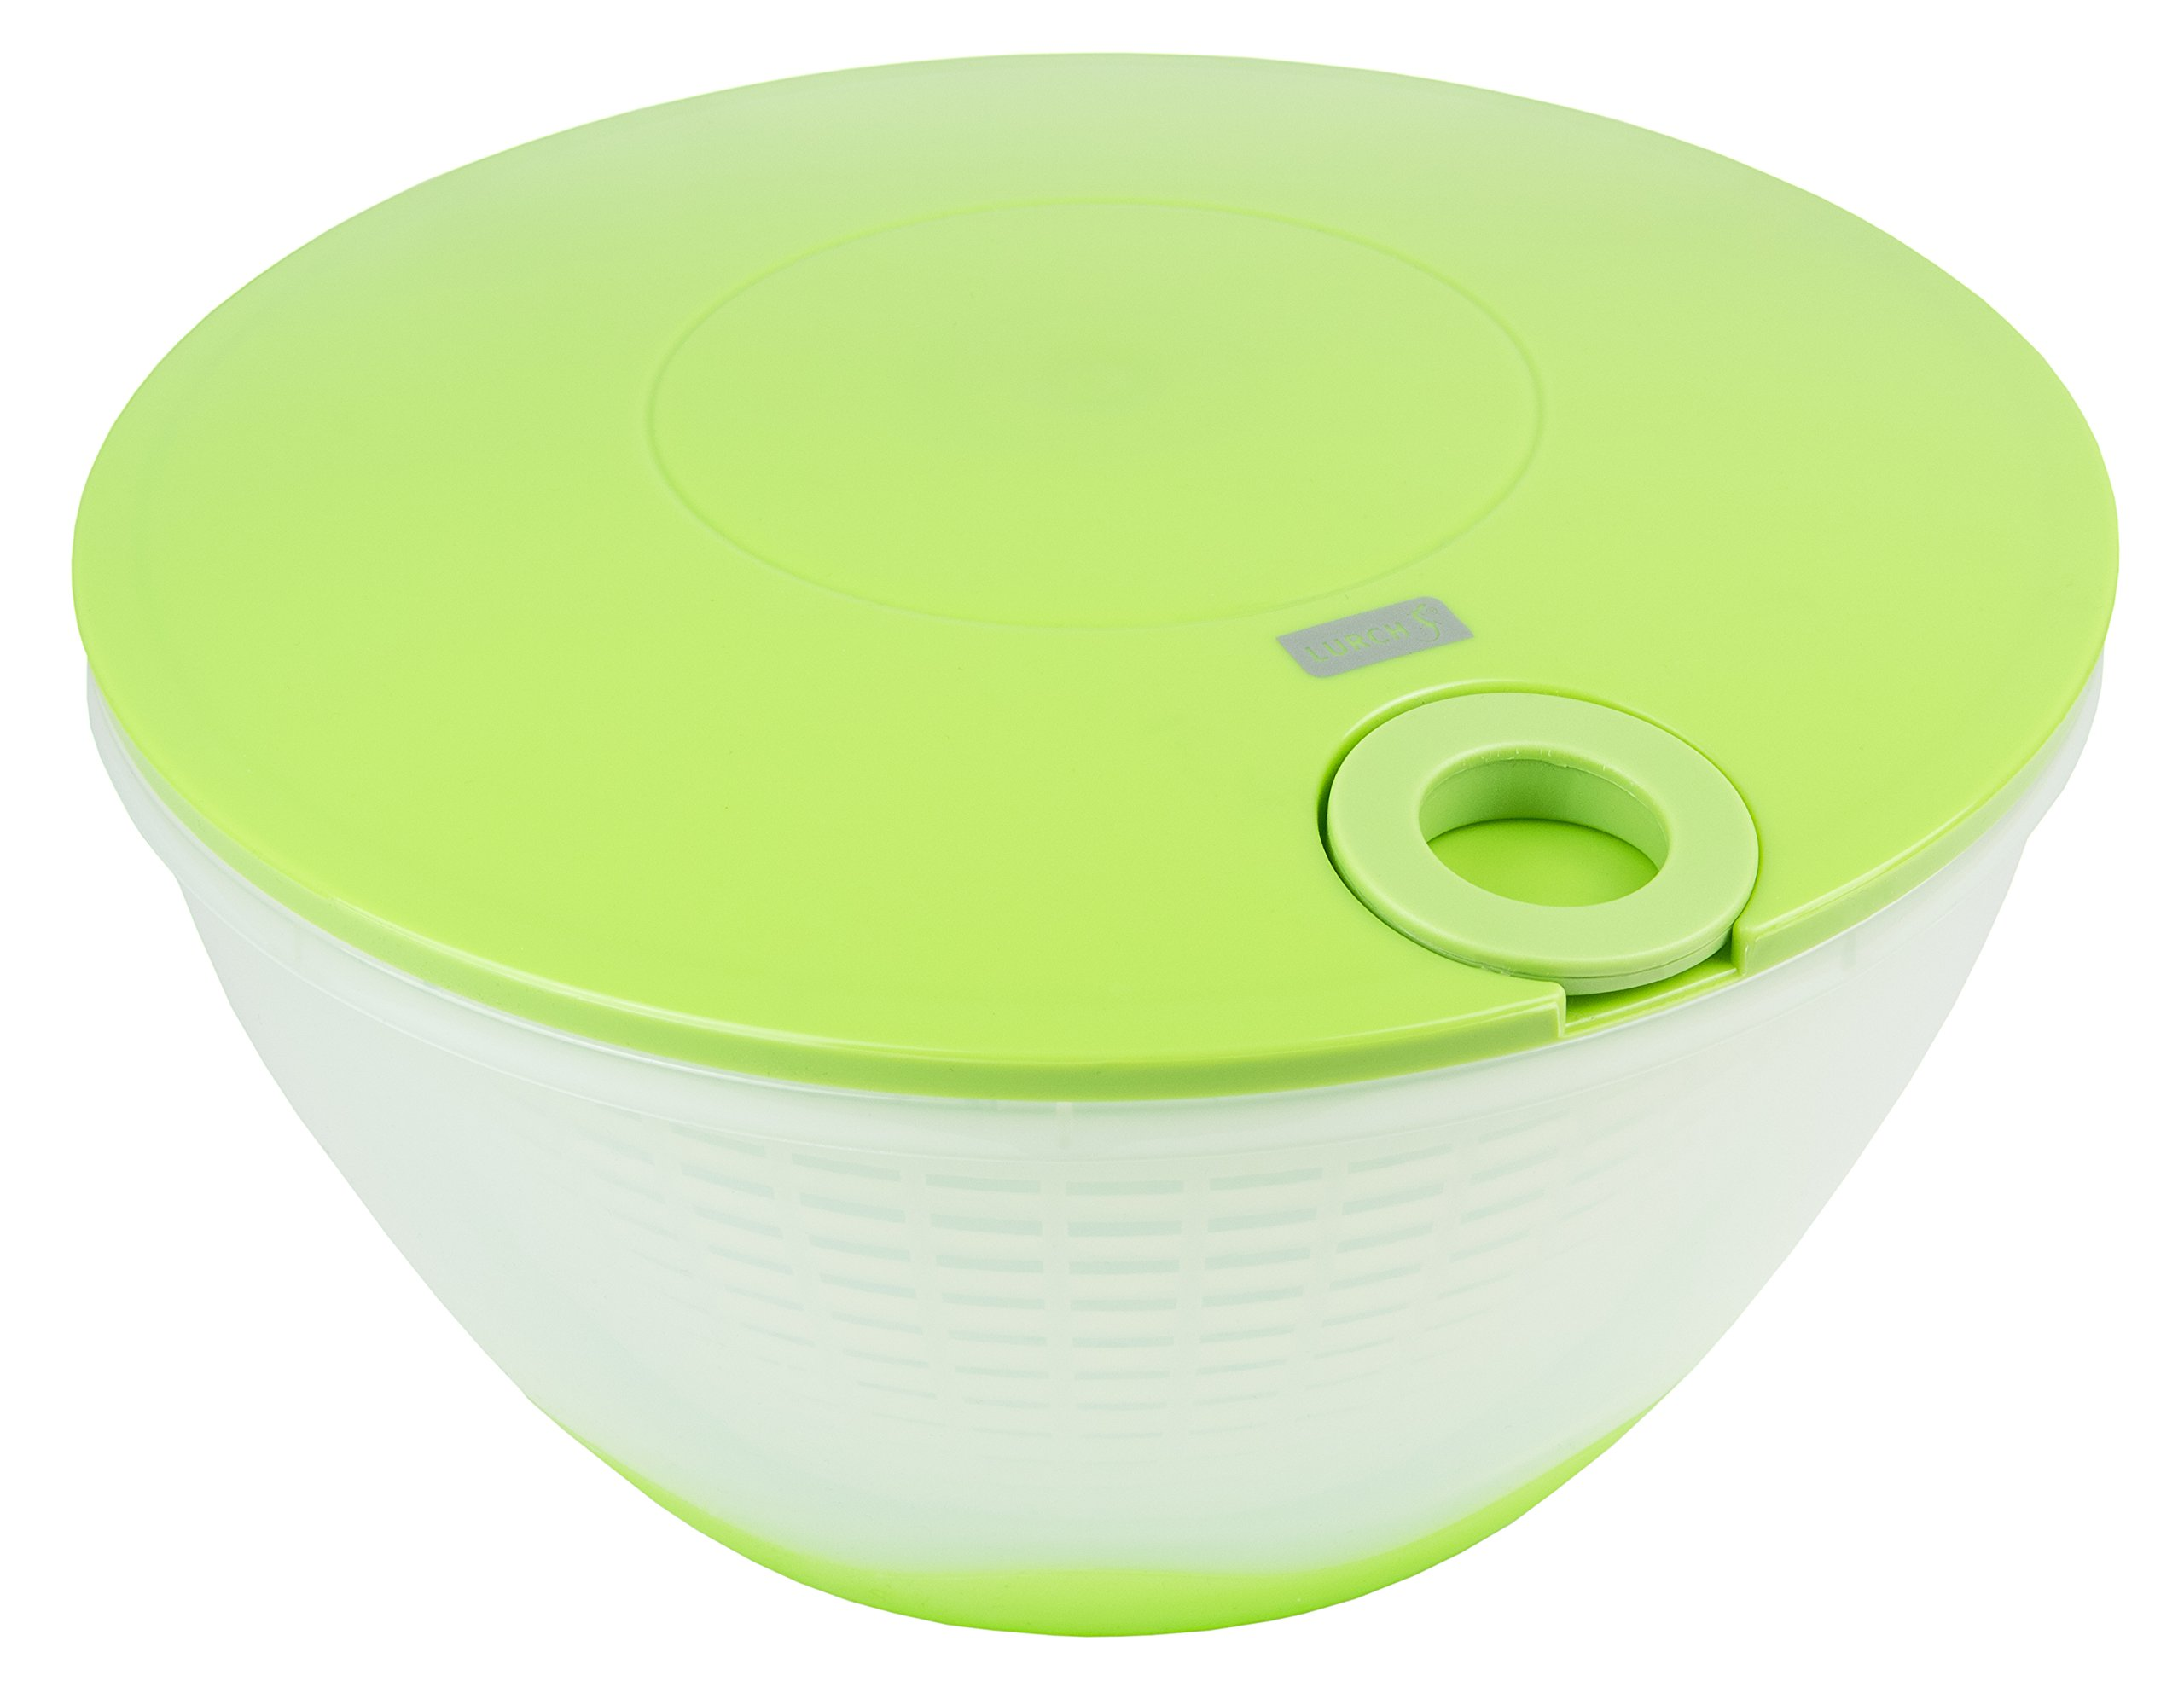 Lurch Germany Salad Spinner with Pull Cord, Green/Cream White